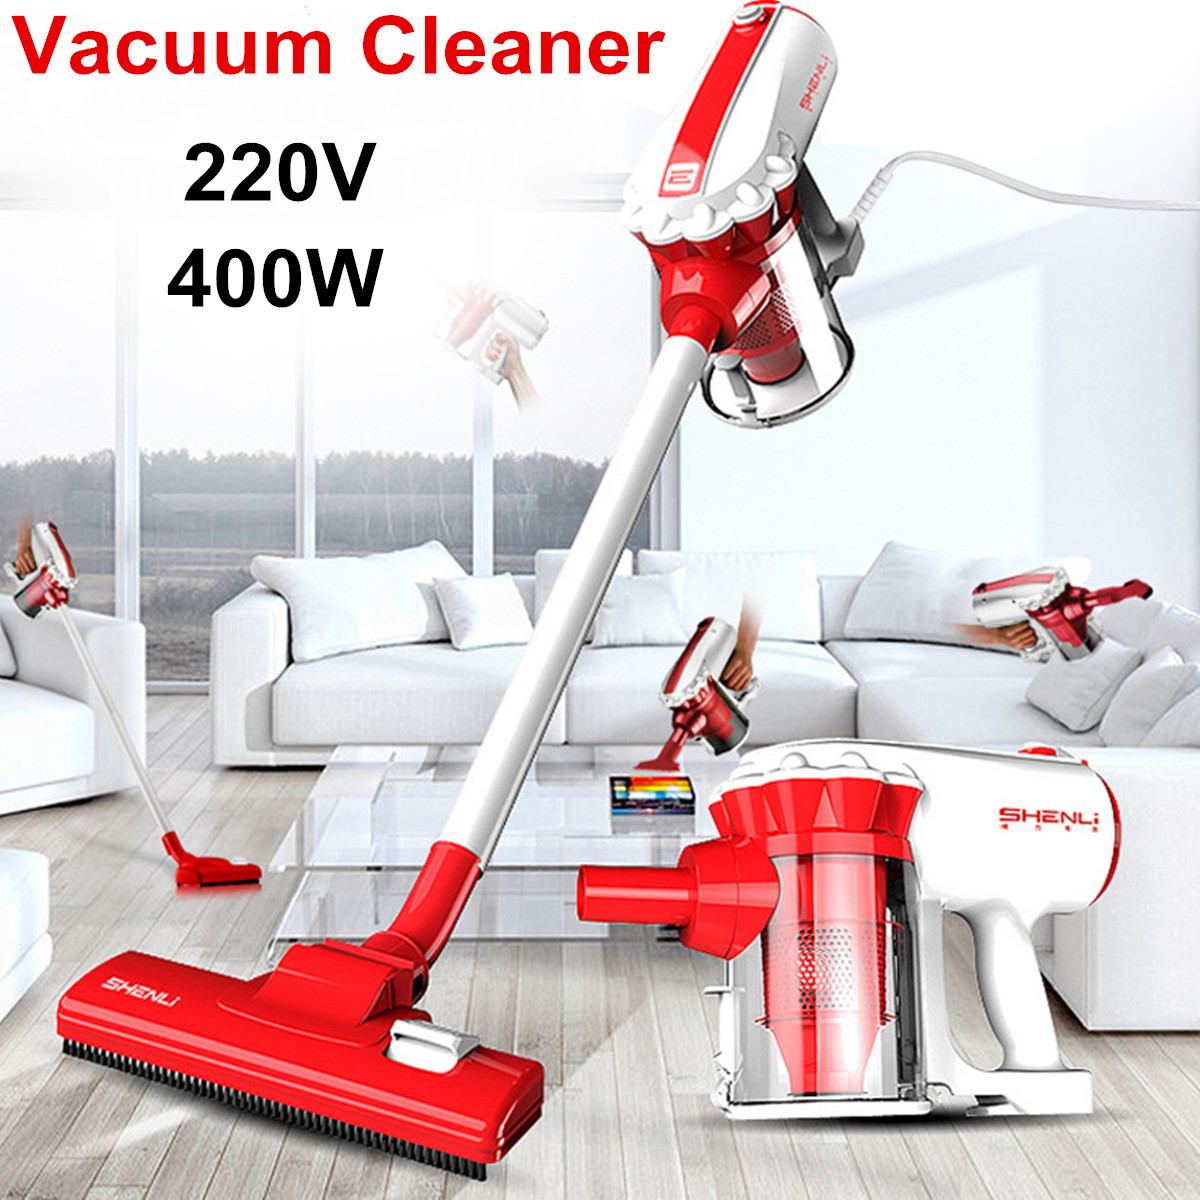 Sofa Vacuum Cleaner Brush Us 98 69 400w 220v Handheld Bagless Handstick Vacuum Cleaner Vac Stick Floor Carpet Sofa Powerful 360 Rotate Interchangeable Roller Brush In Vacuum